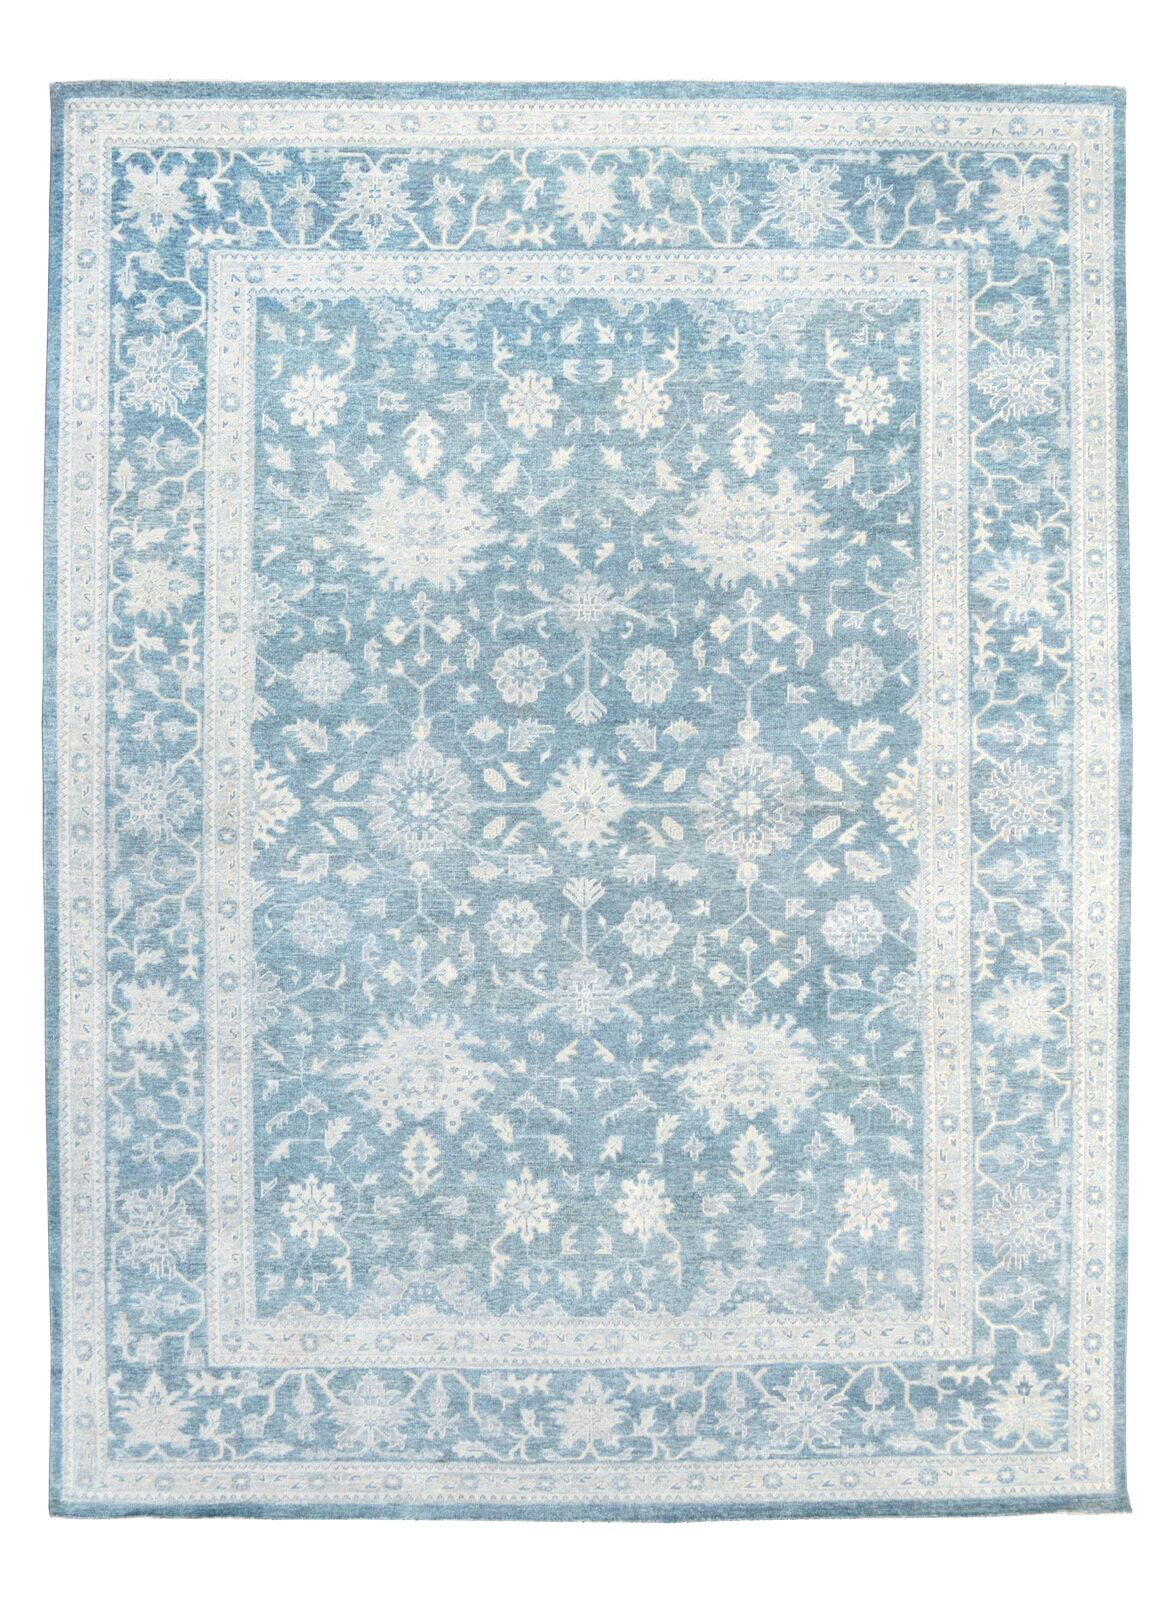 Oushak Hand-Knotted Blue Area Rug Rug Size: Rectangle 12' x 15'